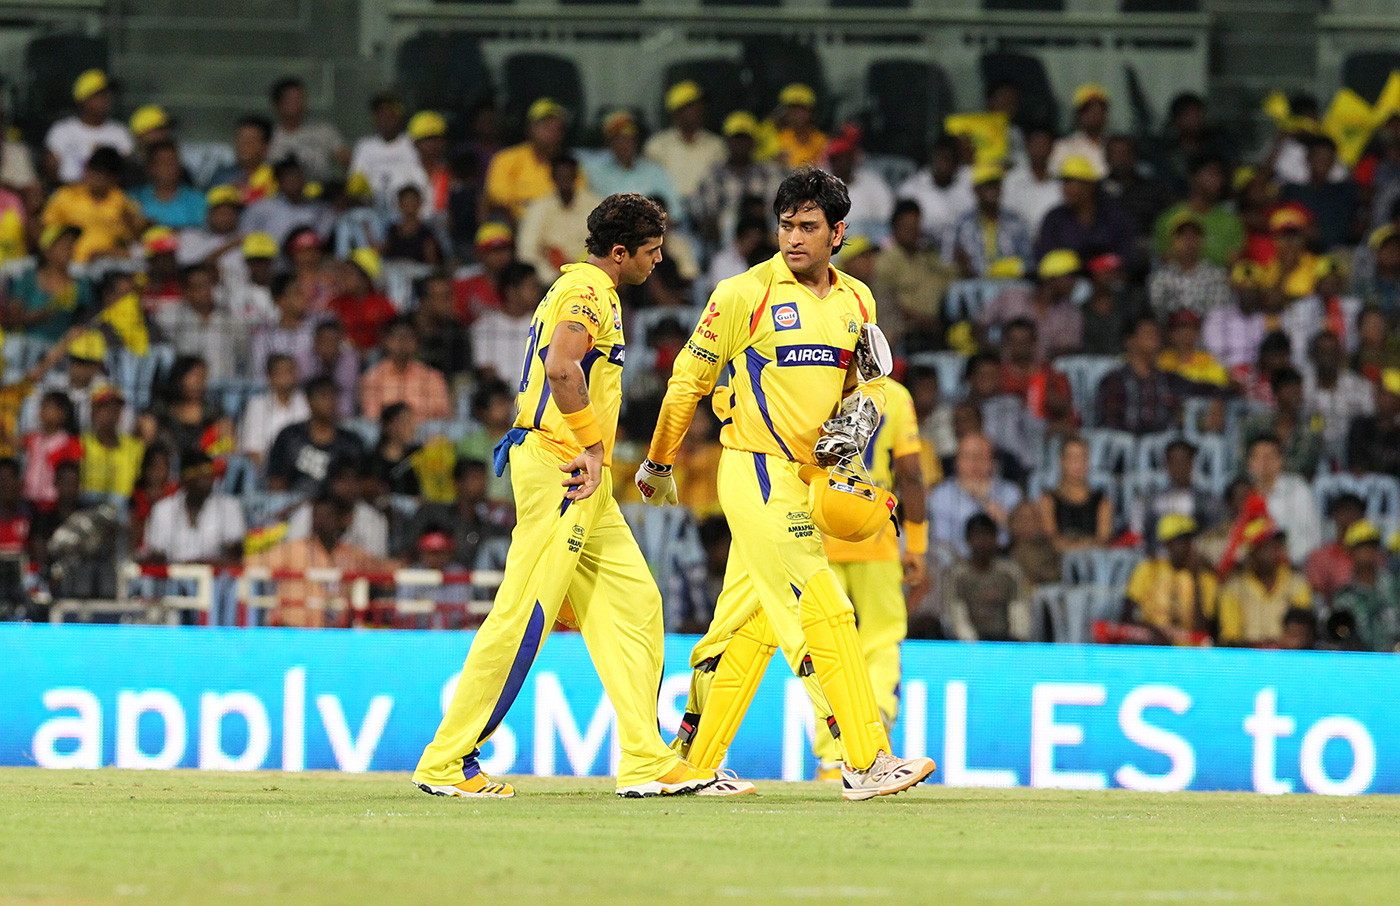 The captain's man: Jadeja shares a dressing room with Dhoni at Chennai Super Kings as well